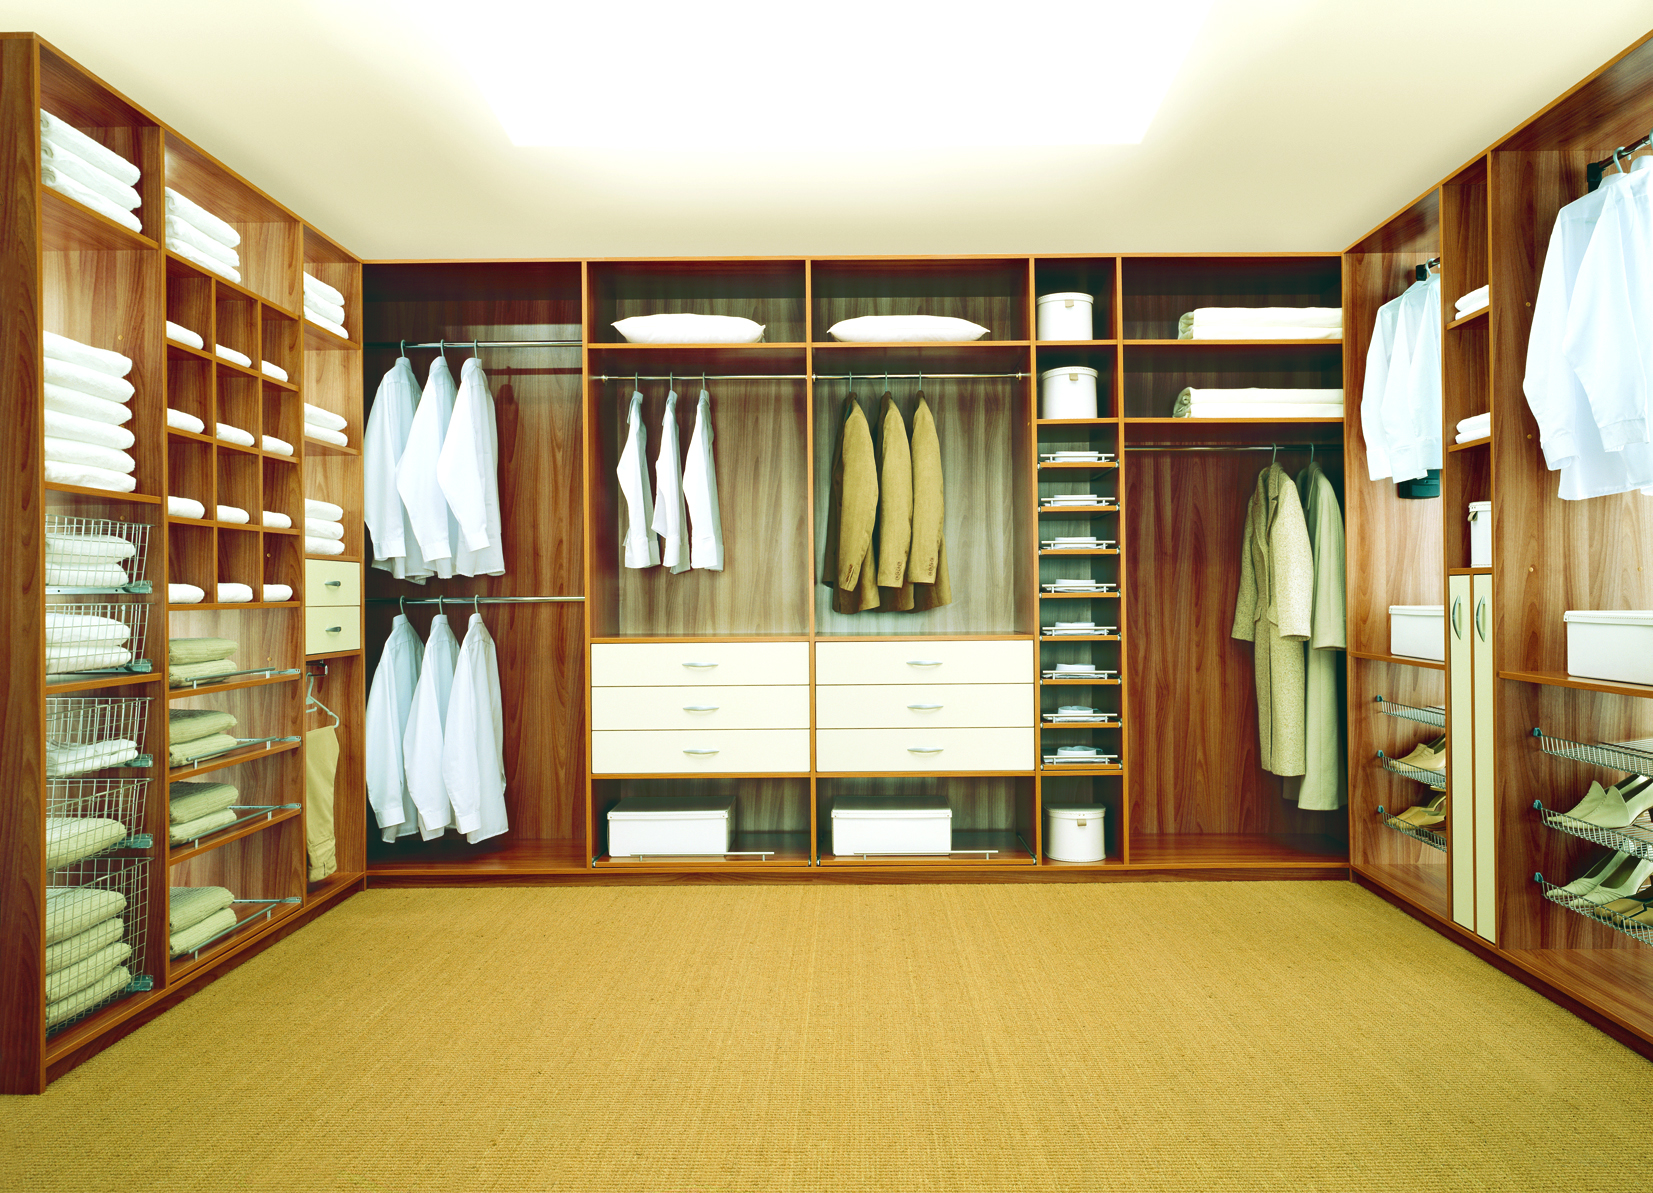 Walk In Closet Images interior design marbella | walk in closets and wardrobes – design